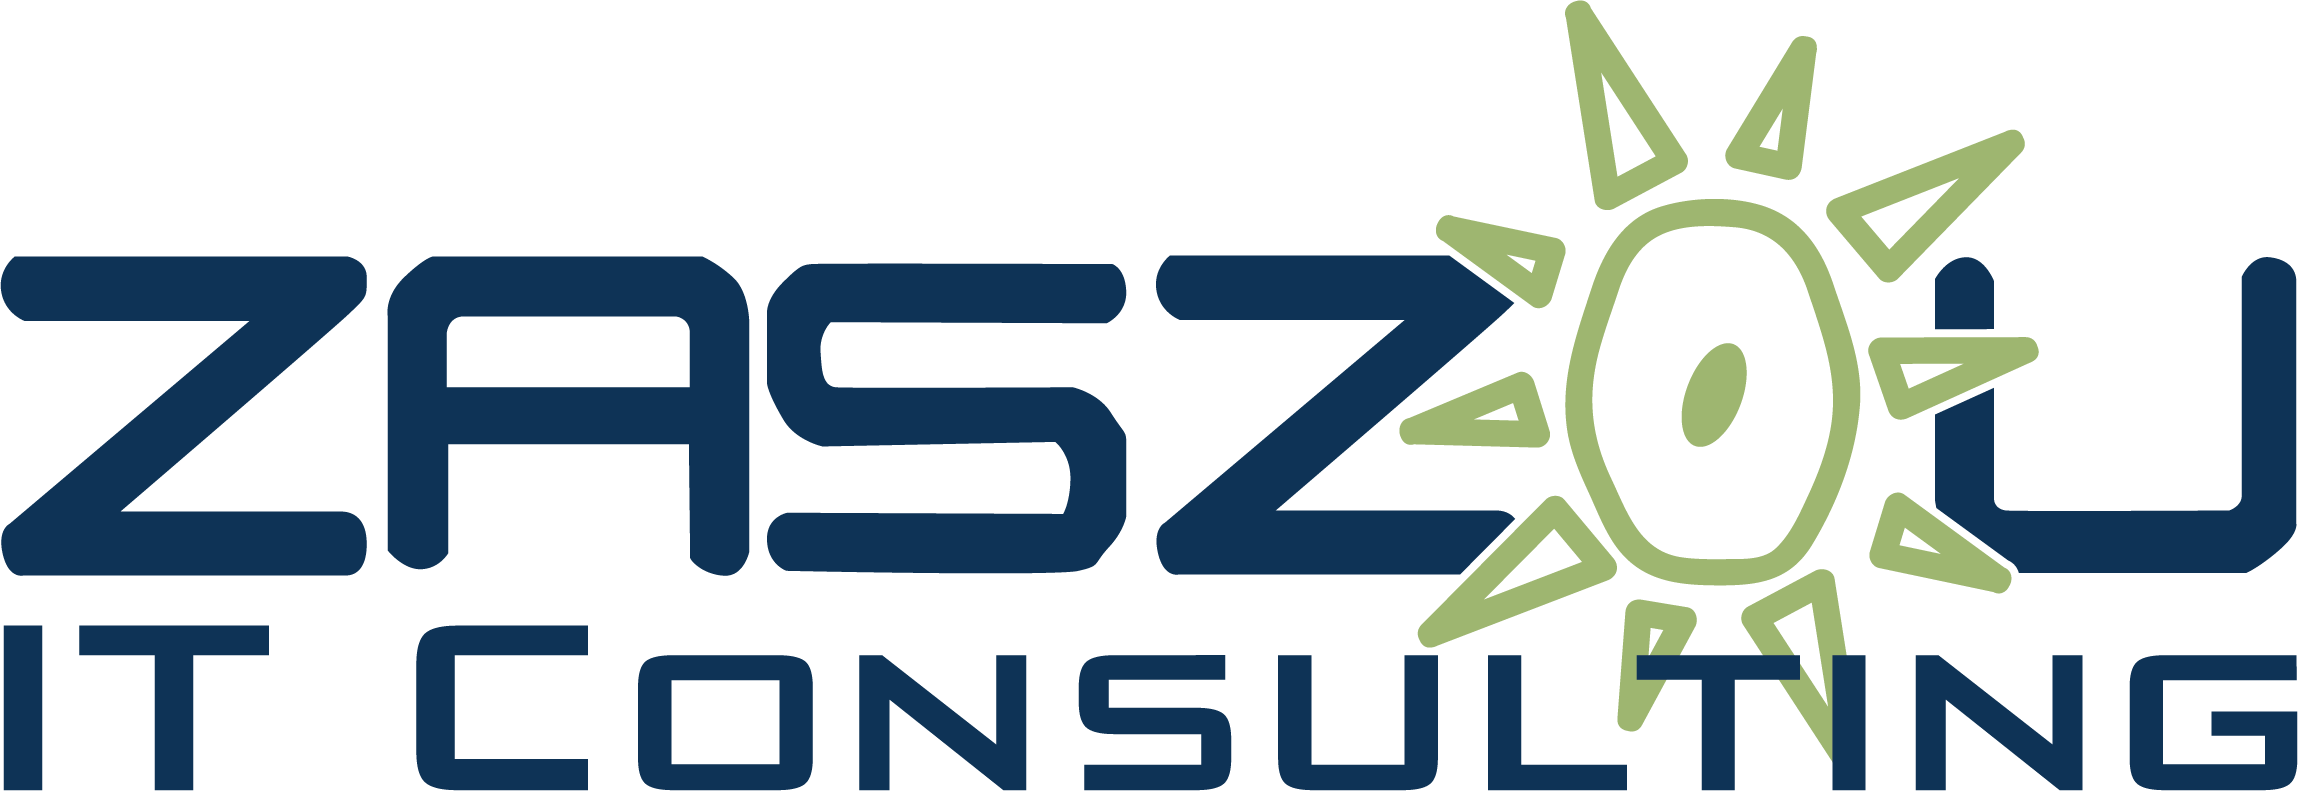 Zaszou IT Consulting